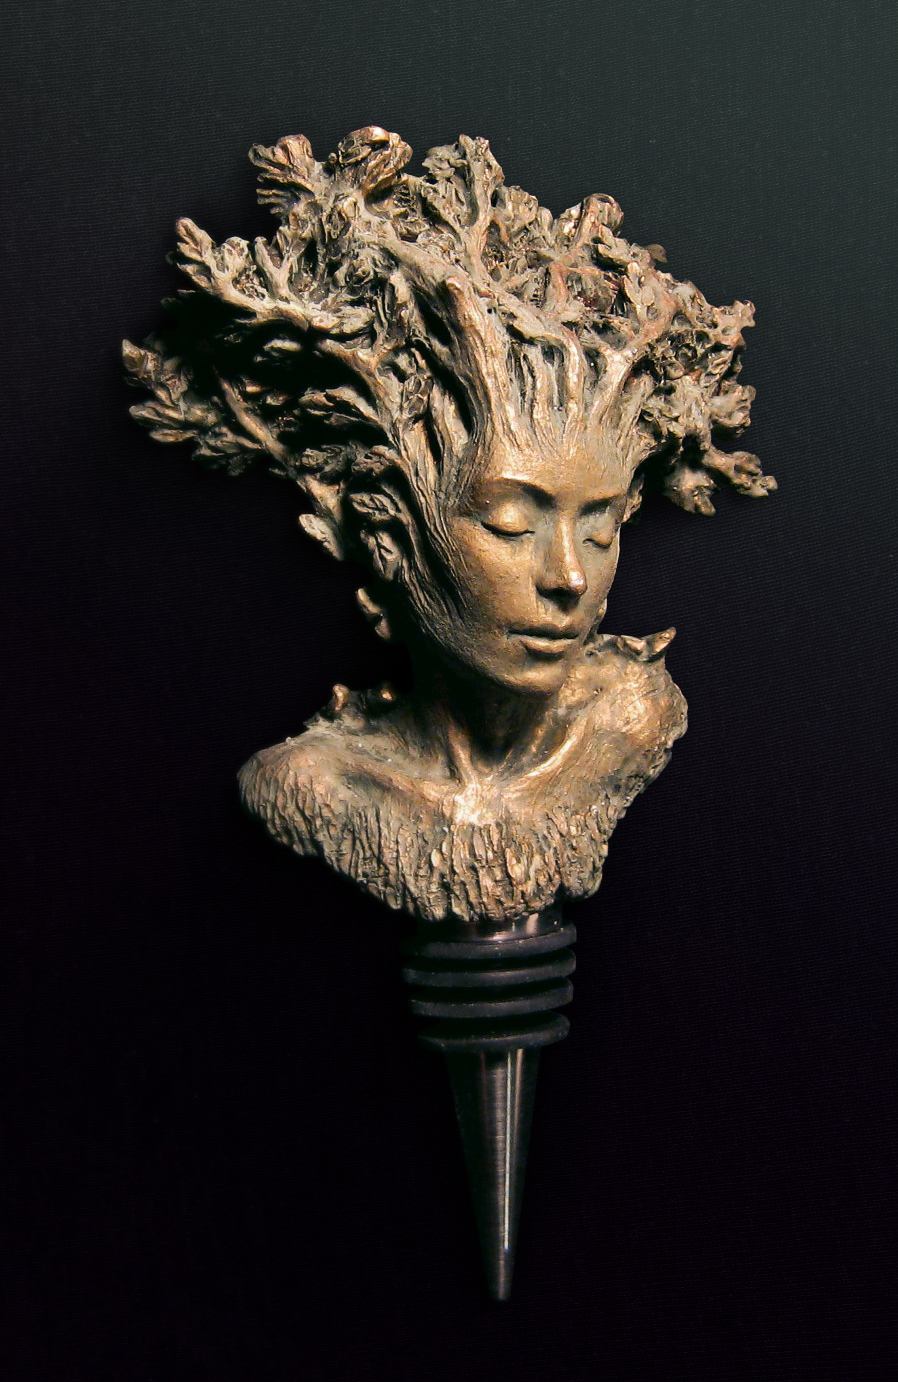 Dellamorte and Co. - Dryad Winestopper